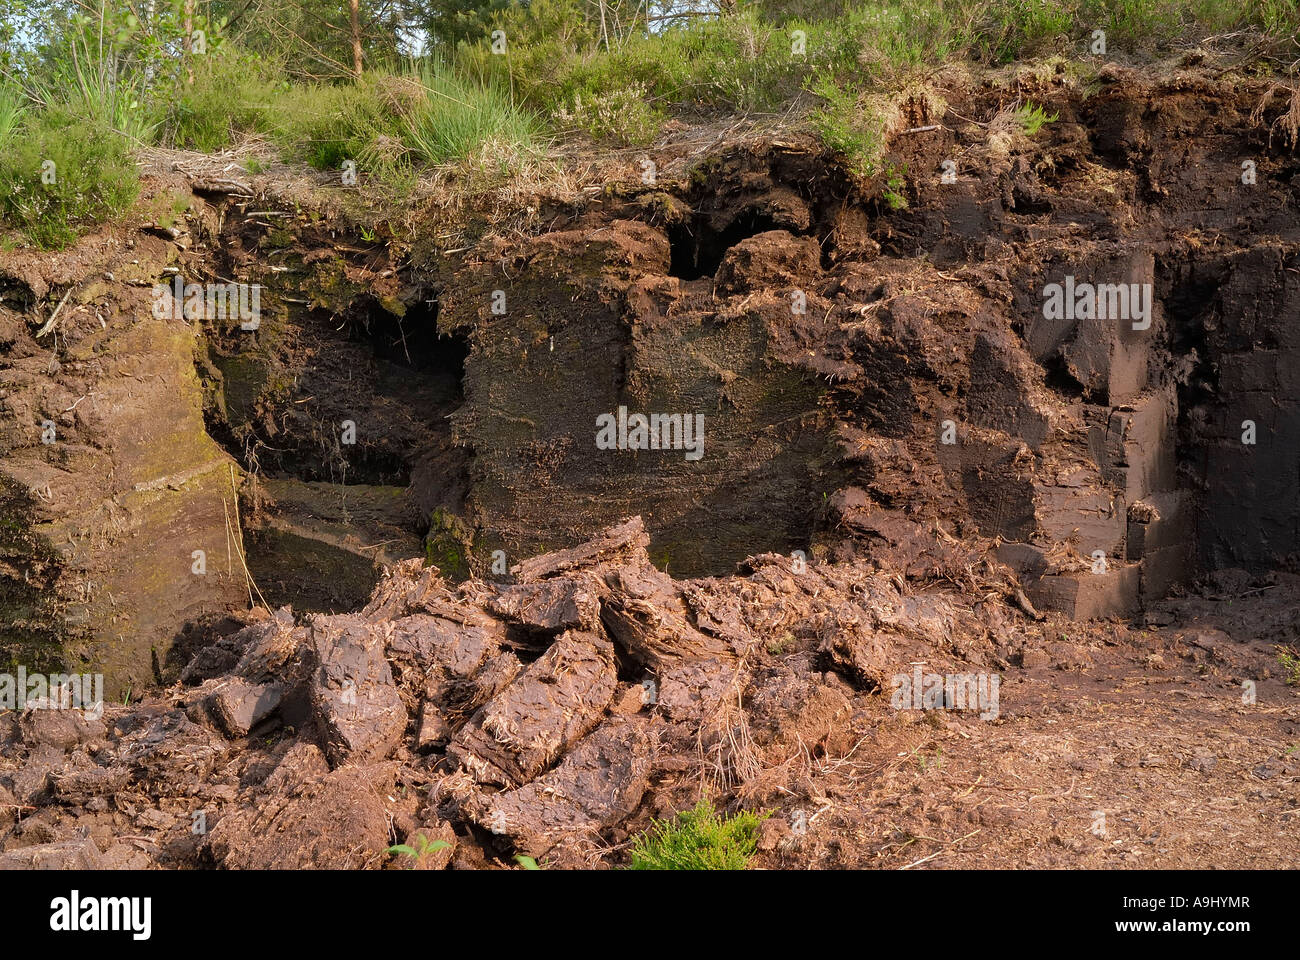 Peat mining claim with recently activity and dried peat turfs in peatbog south of Rosenheim, Germany - Stock Image